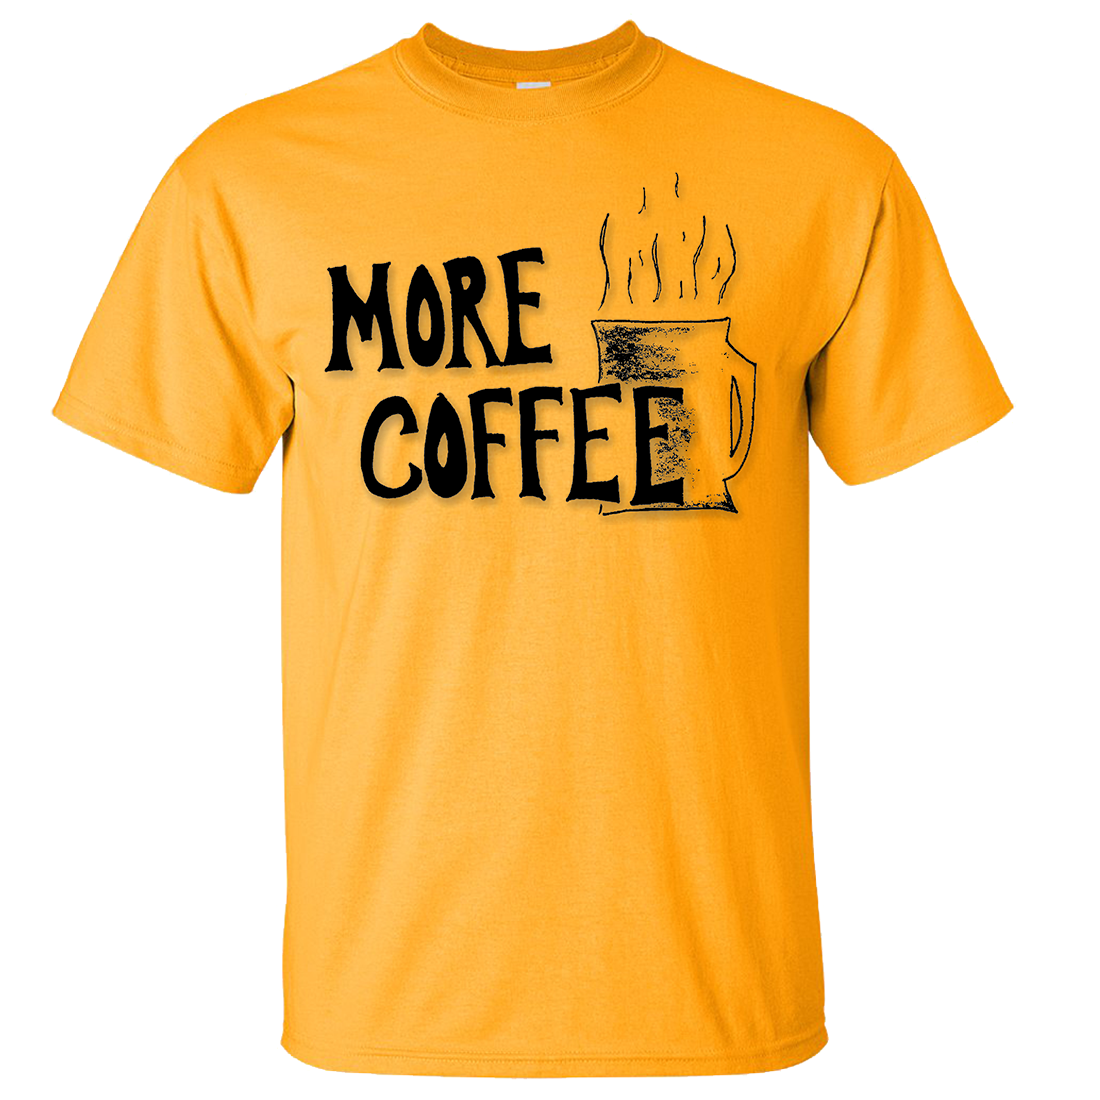 More Coffee Asst Colors T-shirt/tee